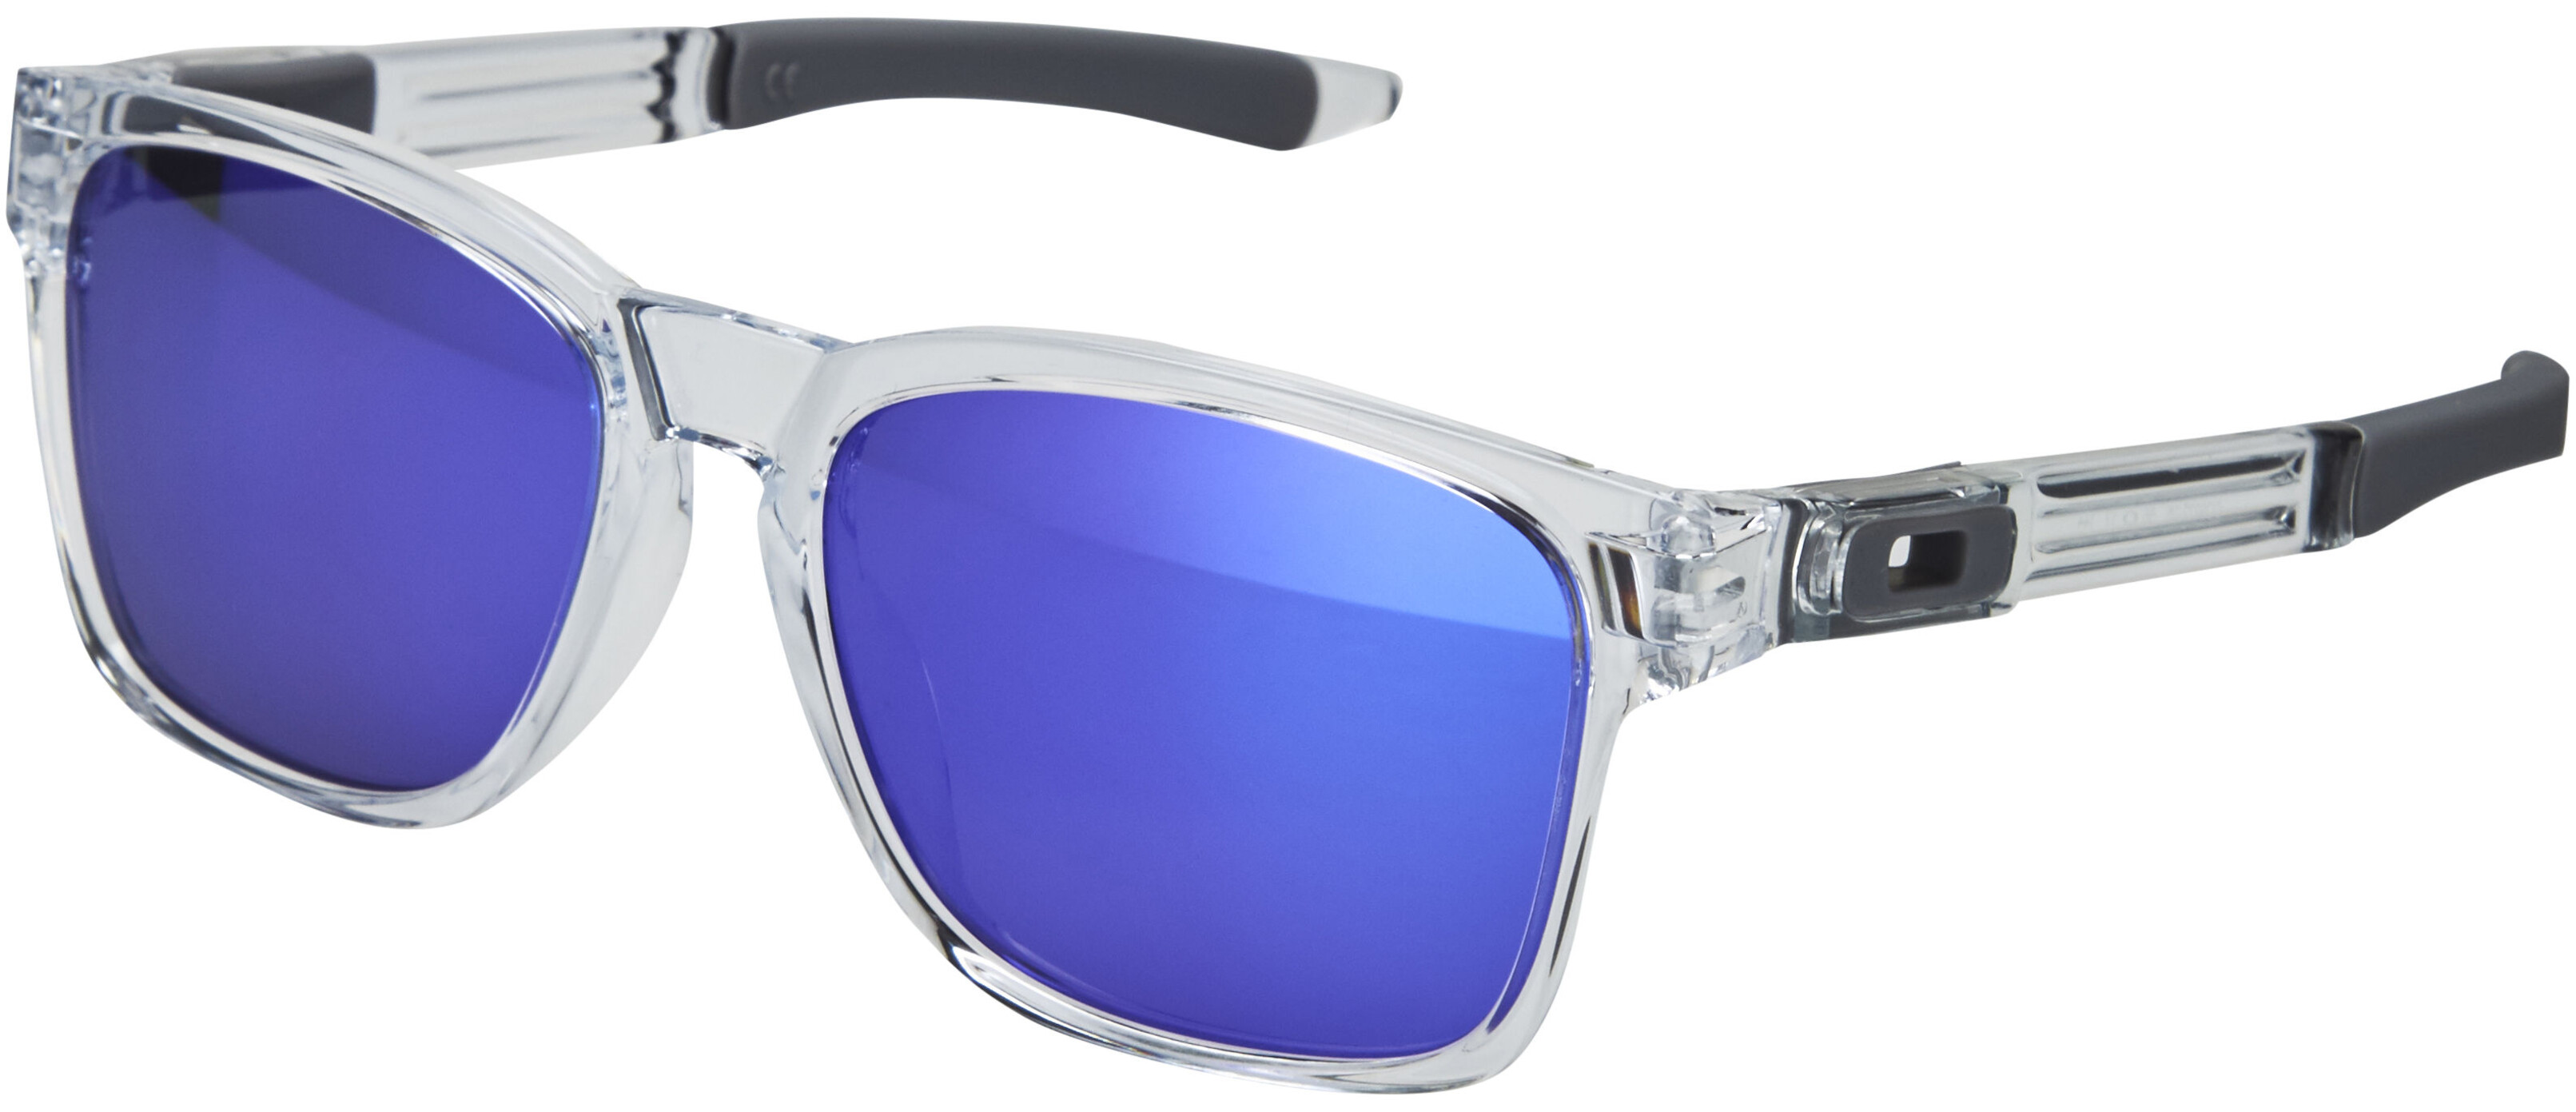 a16c72da8f Oakley Catalyst Bike Glasses transparent at Bikester.co.uk